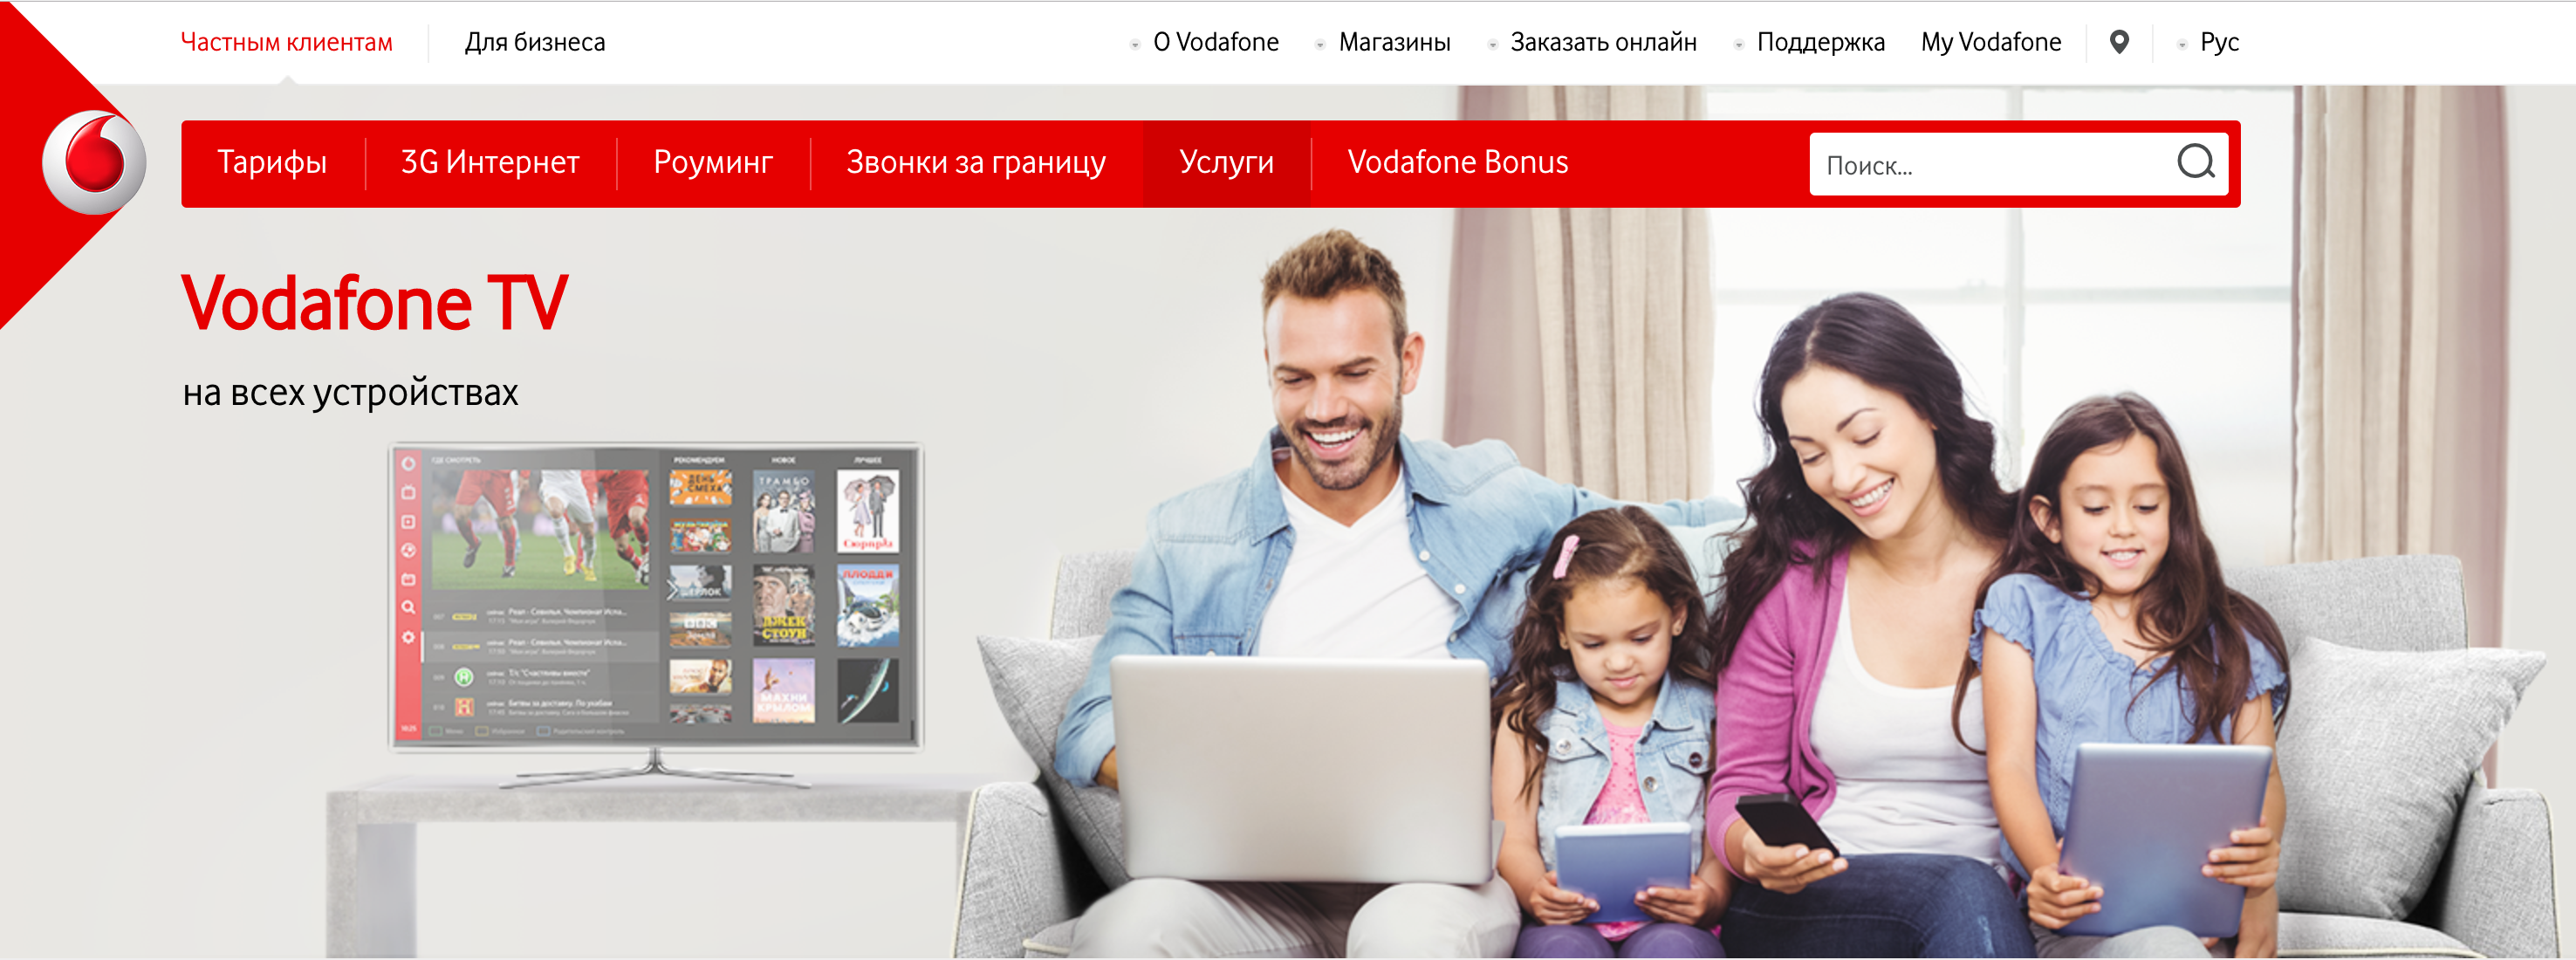 vodafone.tv.png